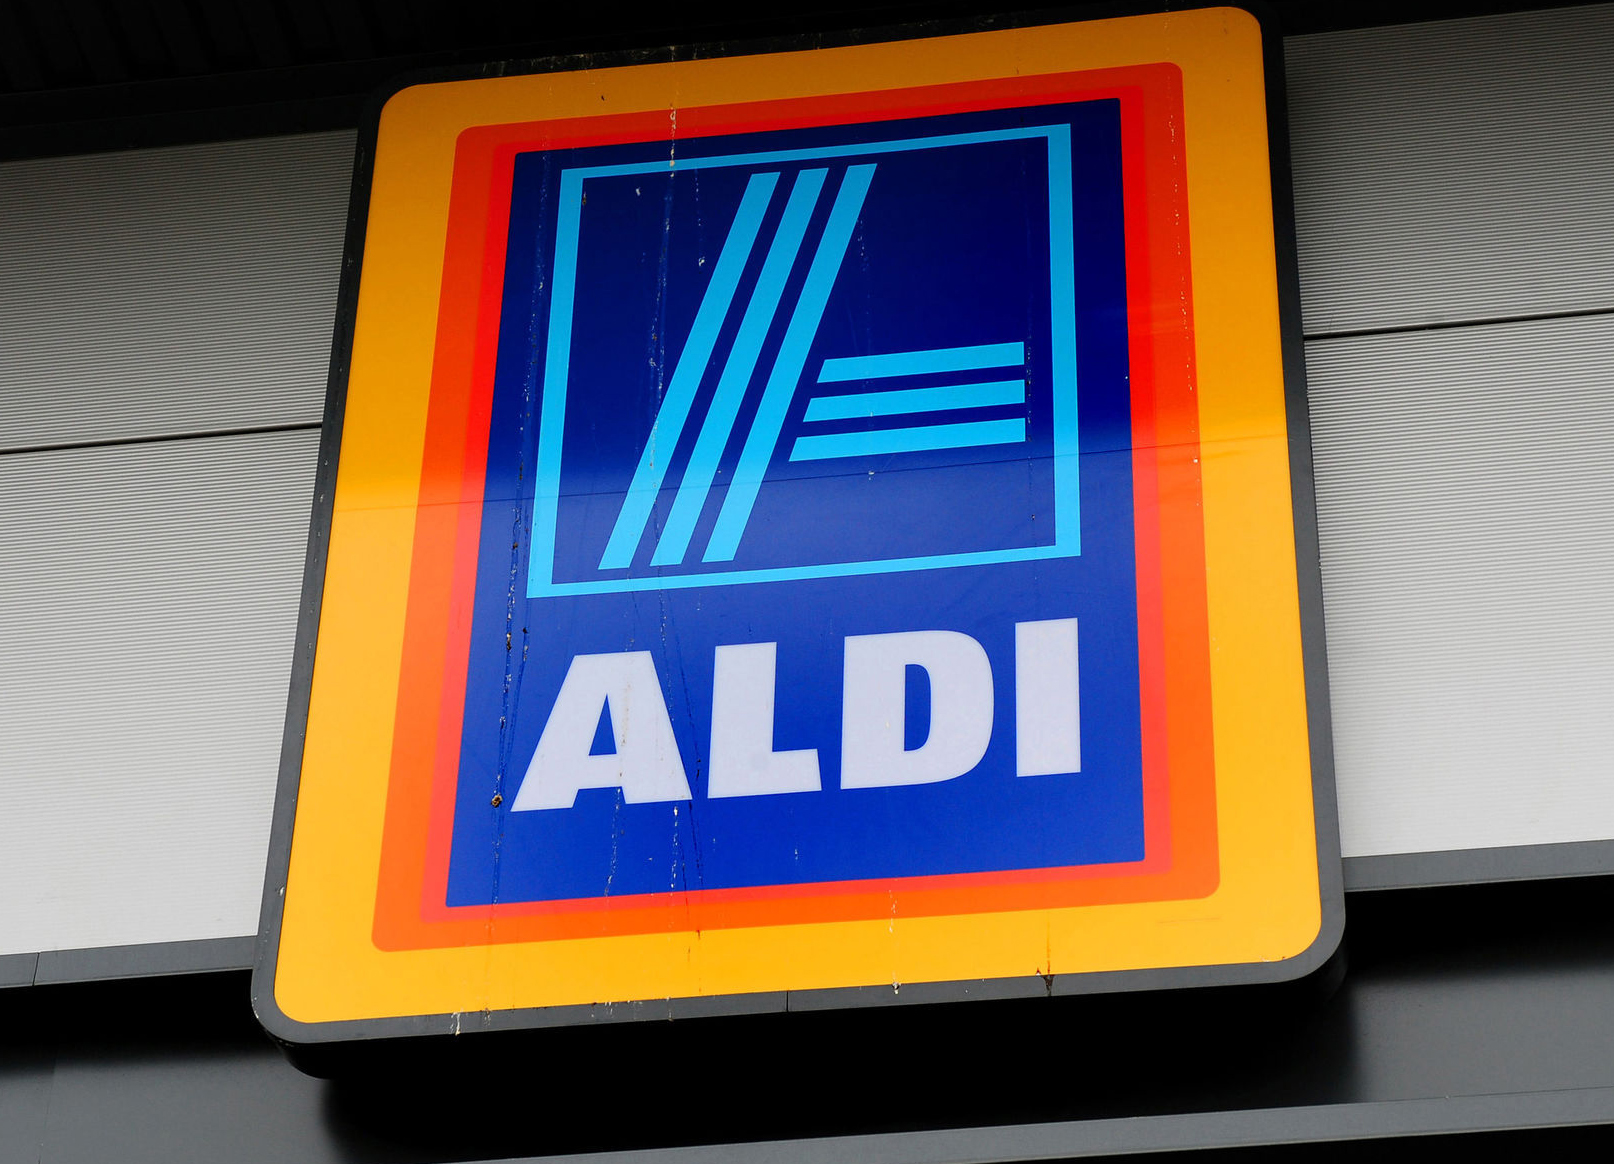 Aldi wins 'battle' with Tesco to build in Silsden